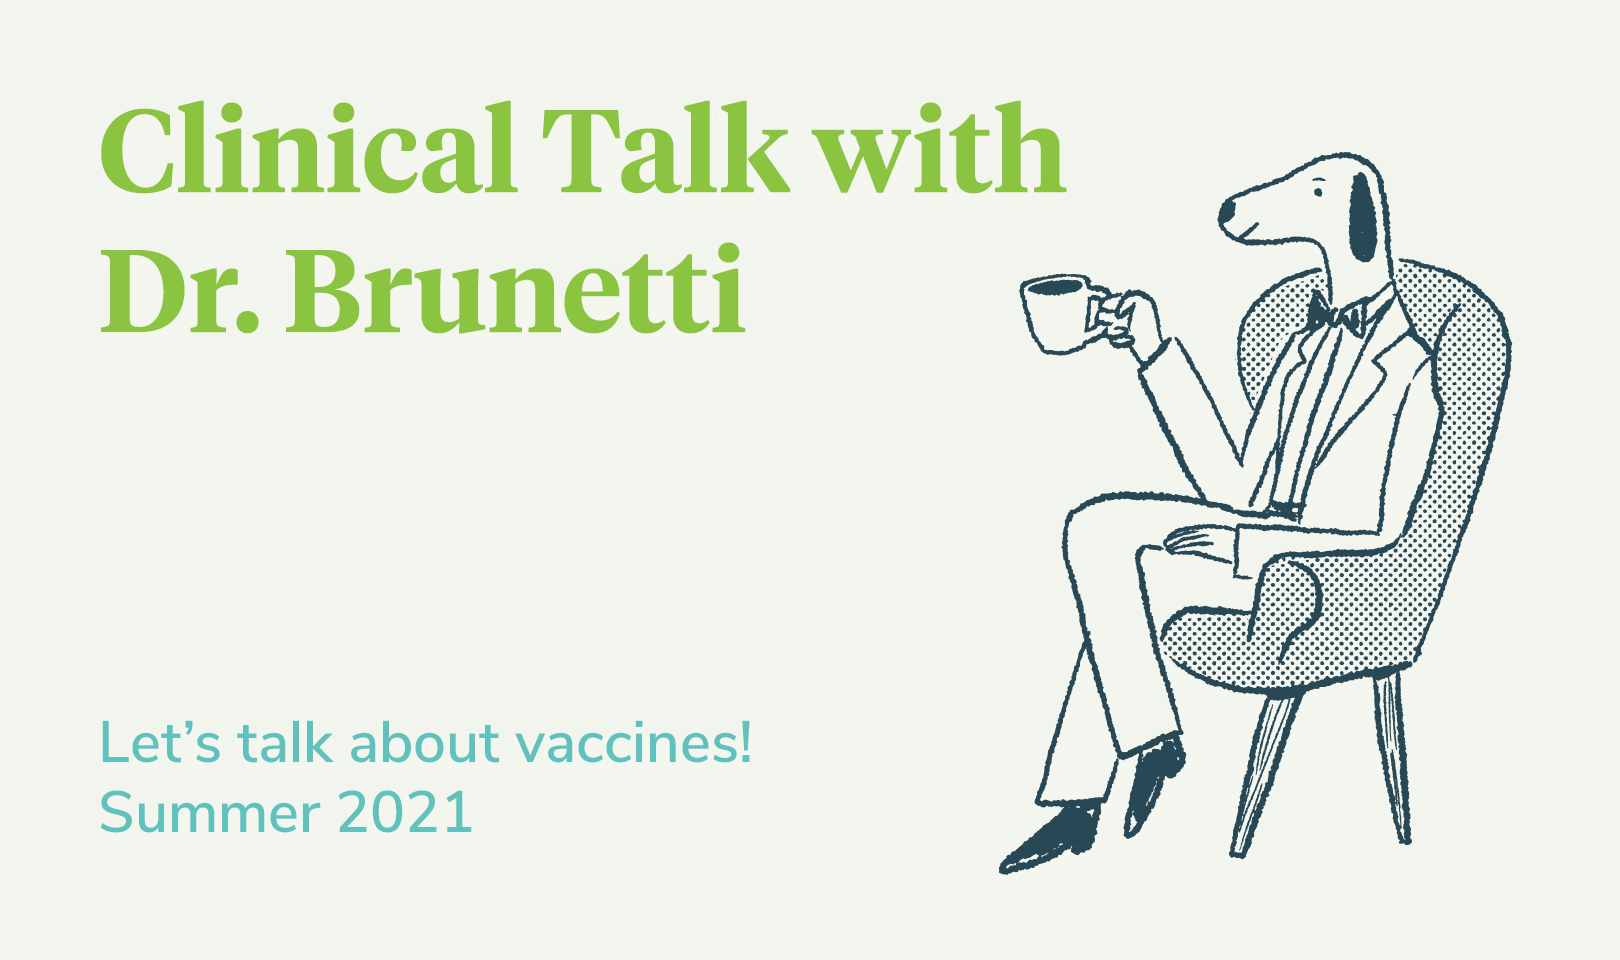 Let's talk about vaccines in vet med